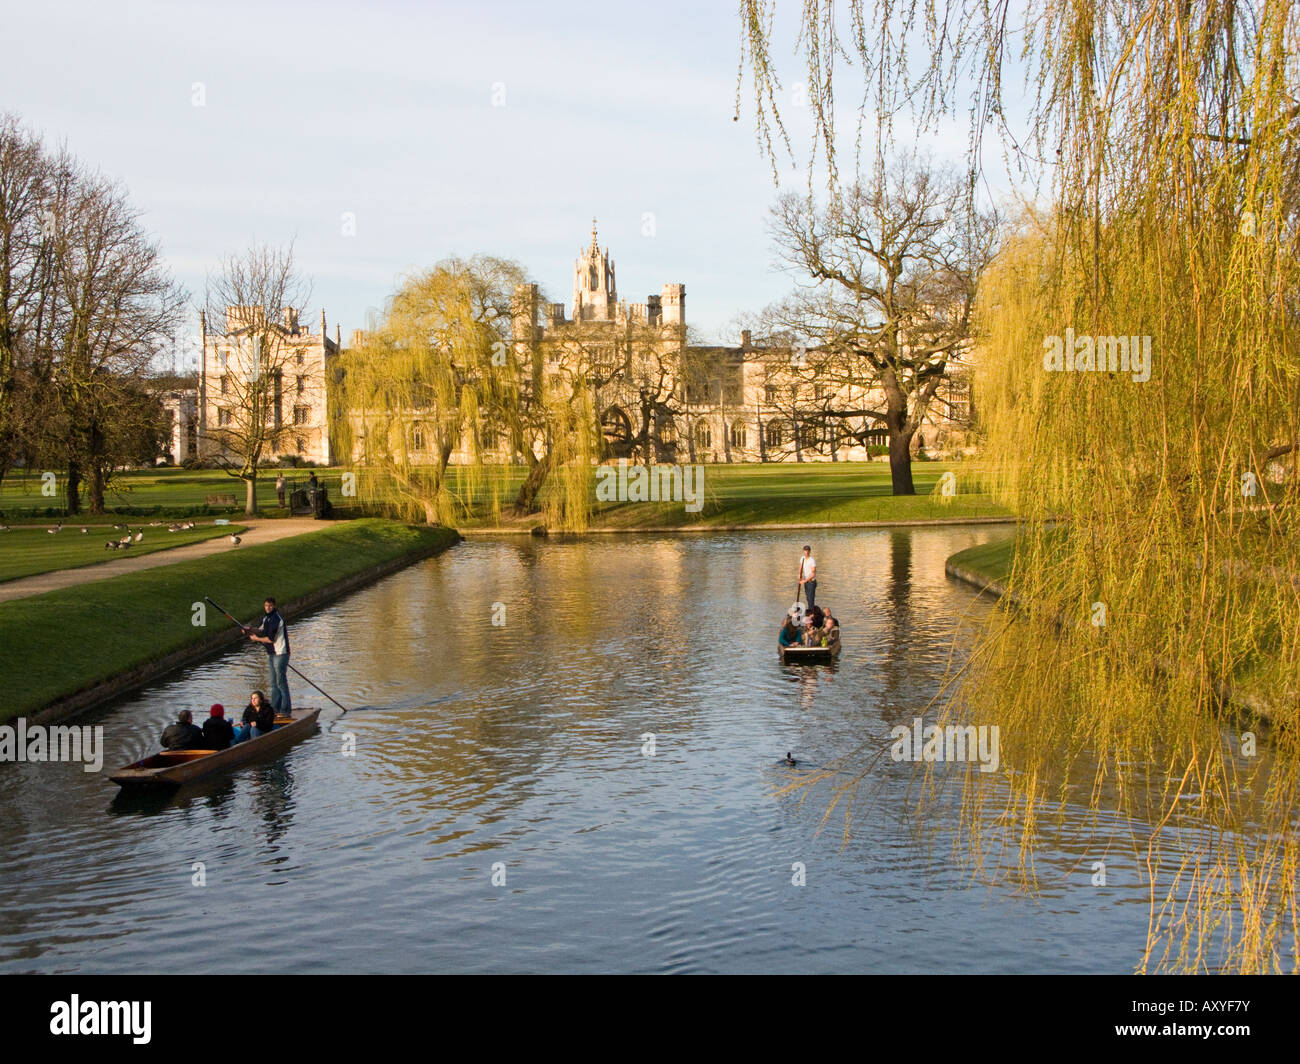 punts on the river at King's College College, Cambridge, England - Stock Image